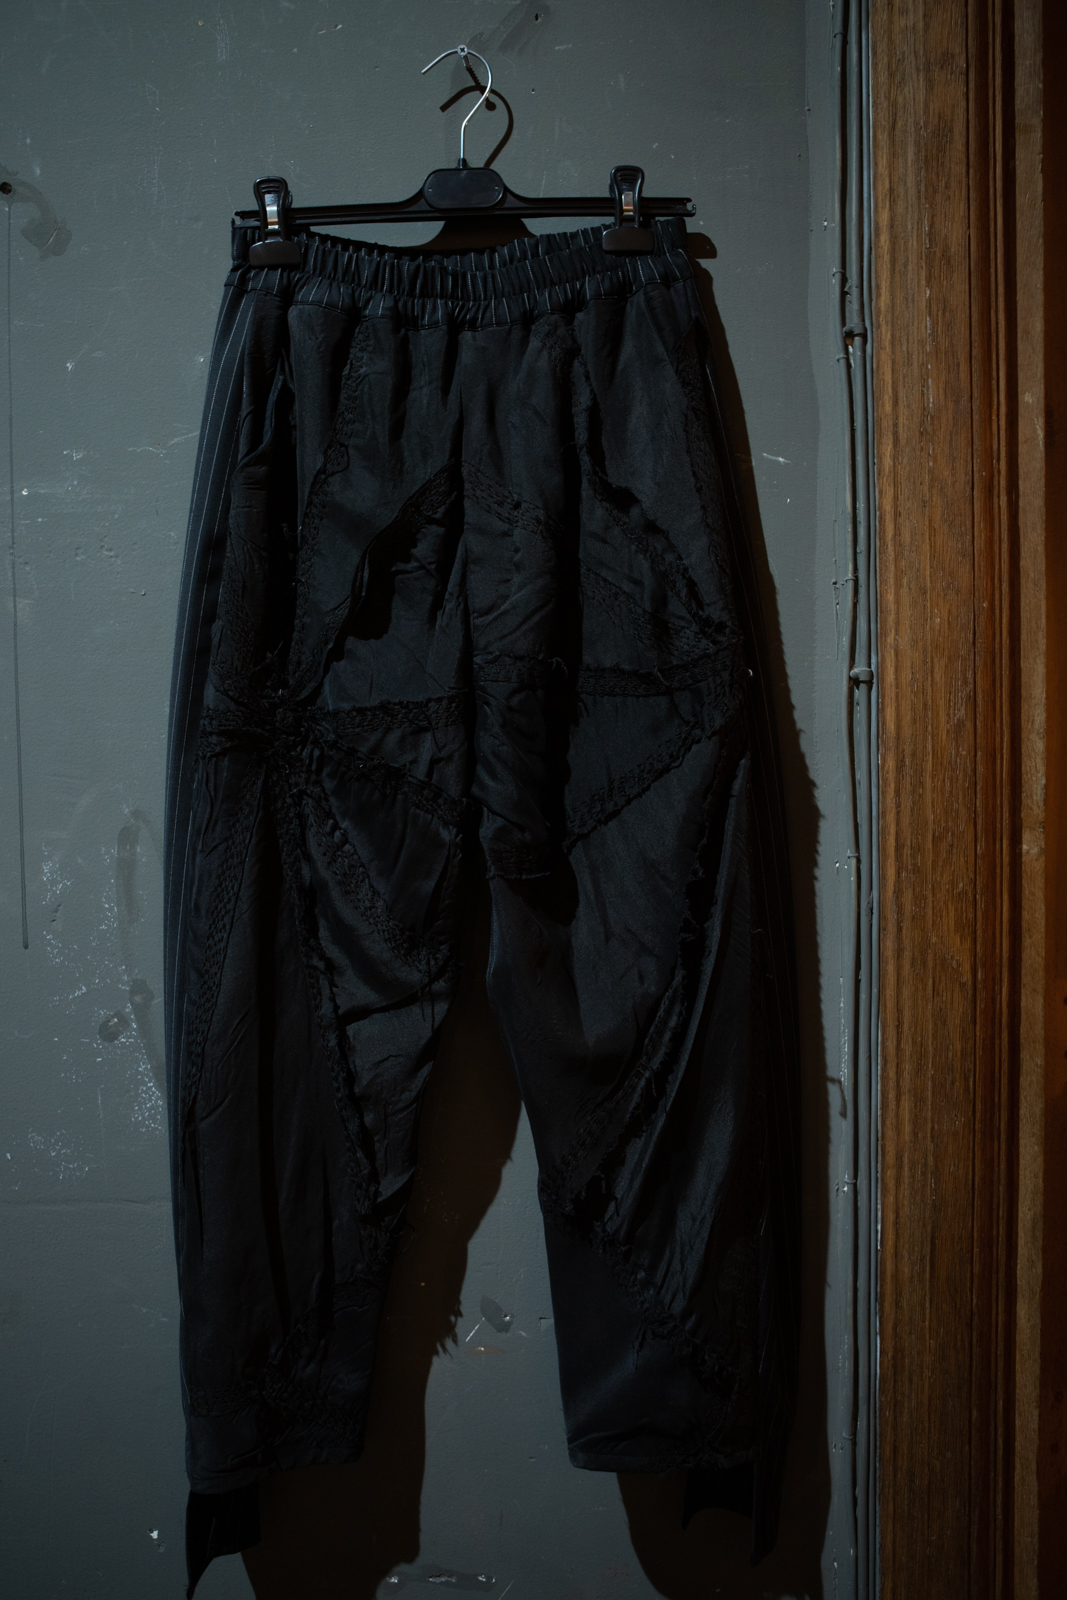 By Walid Patchwork Pants in Black FW20